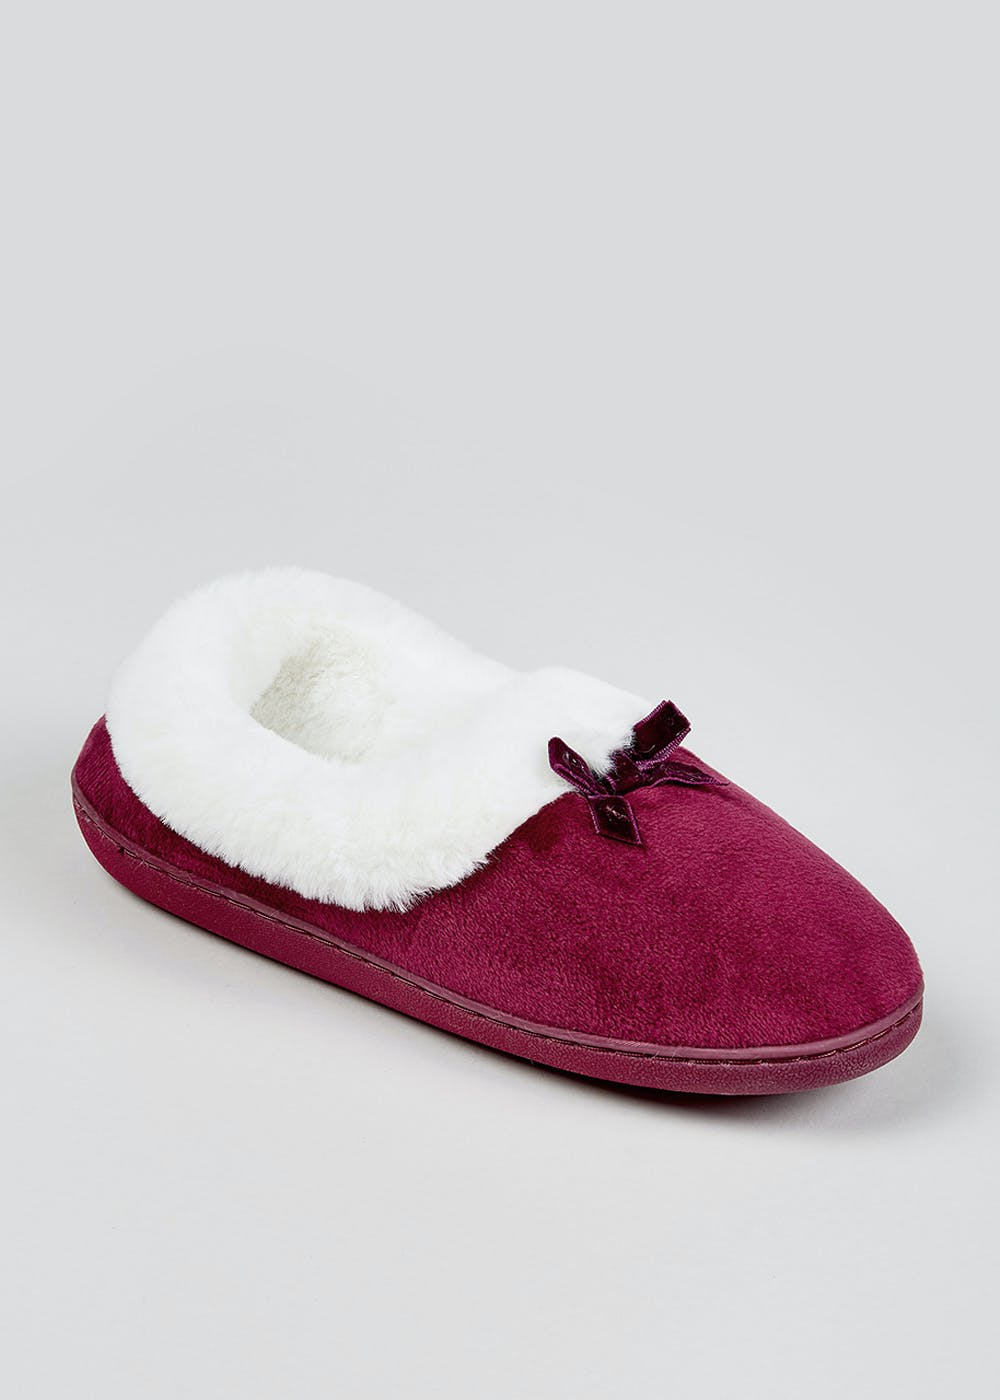 Classic Bow Faux Fur Full Slippers – Burgundy